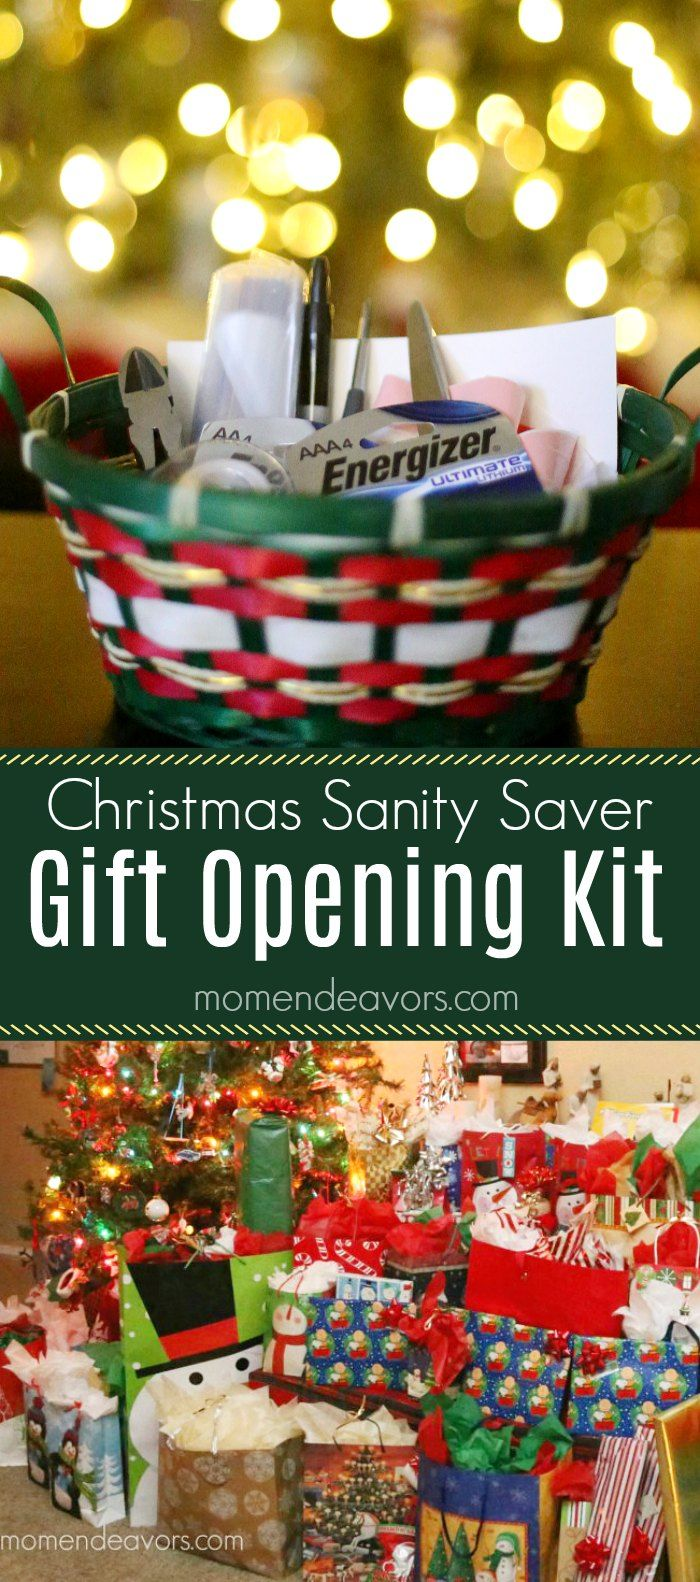 DIY Gift Opening Preparedness Kit - An easy Christmas morning sanity saver, this little kit makes gift opening go more smoothly! #StillGoing AD